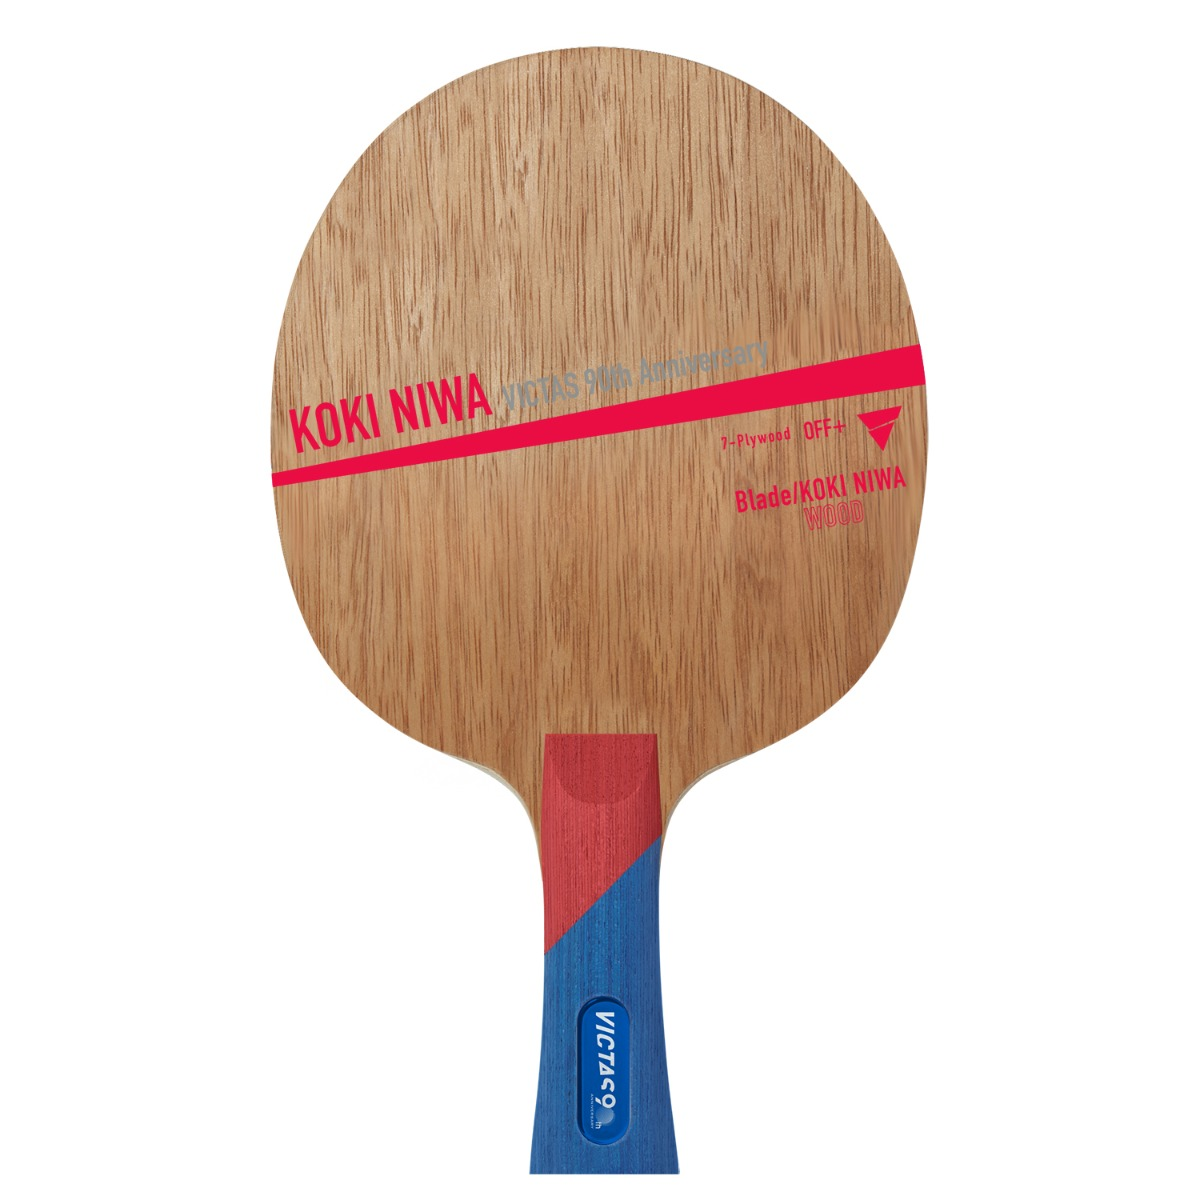 VICTAS 卓球 ラバー ラケット Rubber Racket 新商品